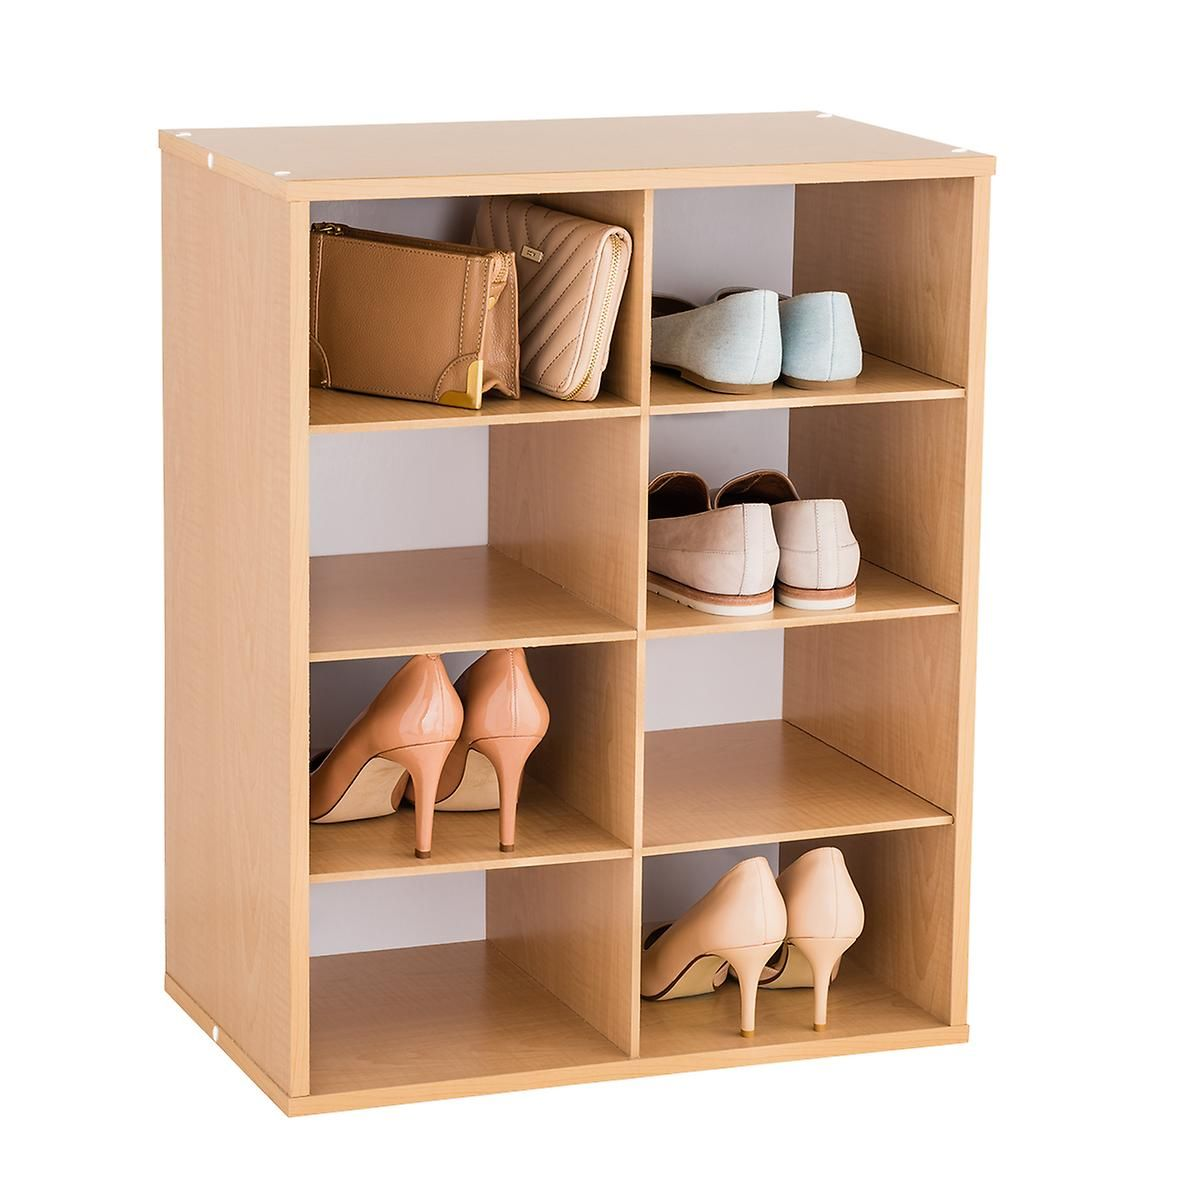 An Option For Shoes And Storage Right Next To The Back Door Purse Organization Mens Accessories